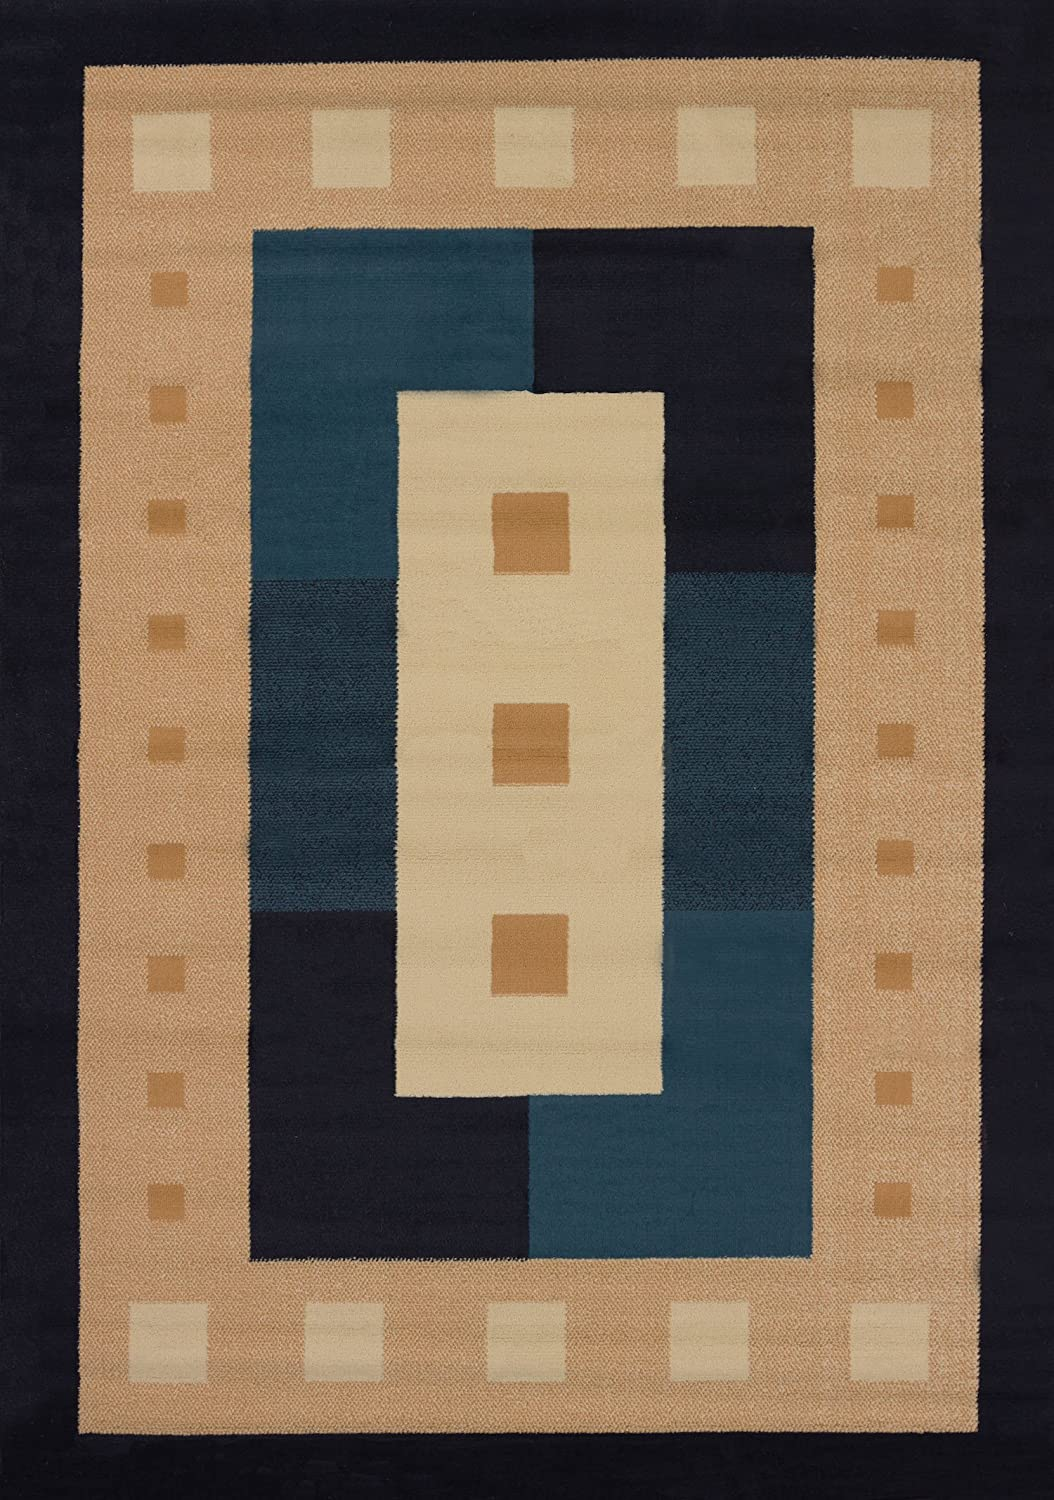 ideas rugs rug with square most contemporary colors patterns outlet tayse designs manly furniture together geometric in me multi elegance magic cordial area exotic